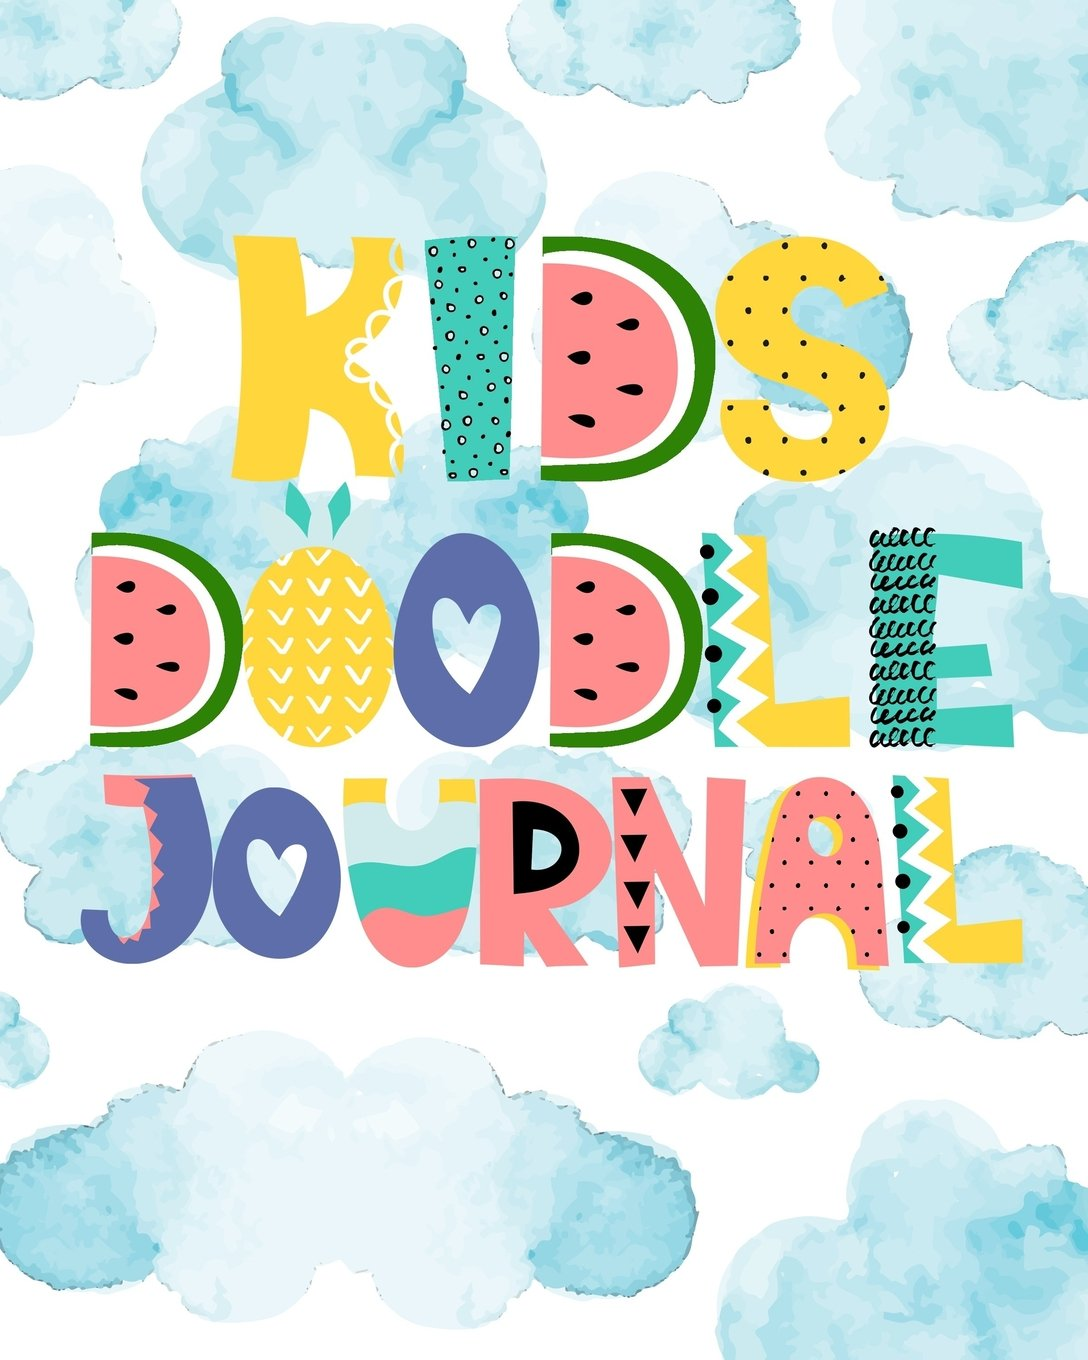 Kids Doodle Journal: Blank Journals To Write In, Doodle In, Draw In Or Sketch In, 8